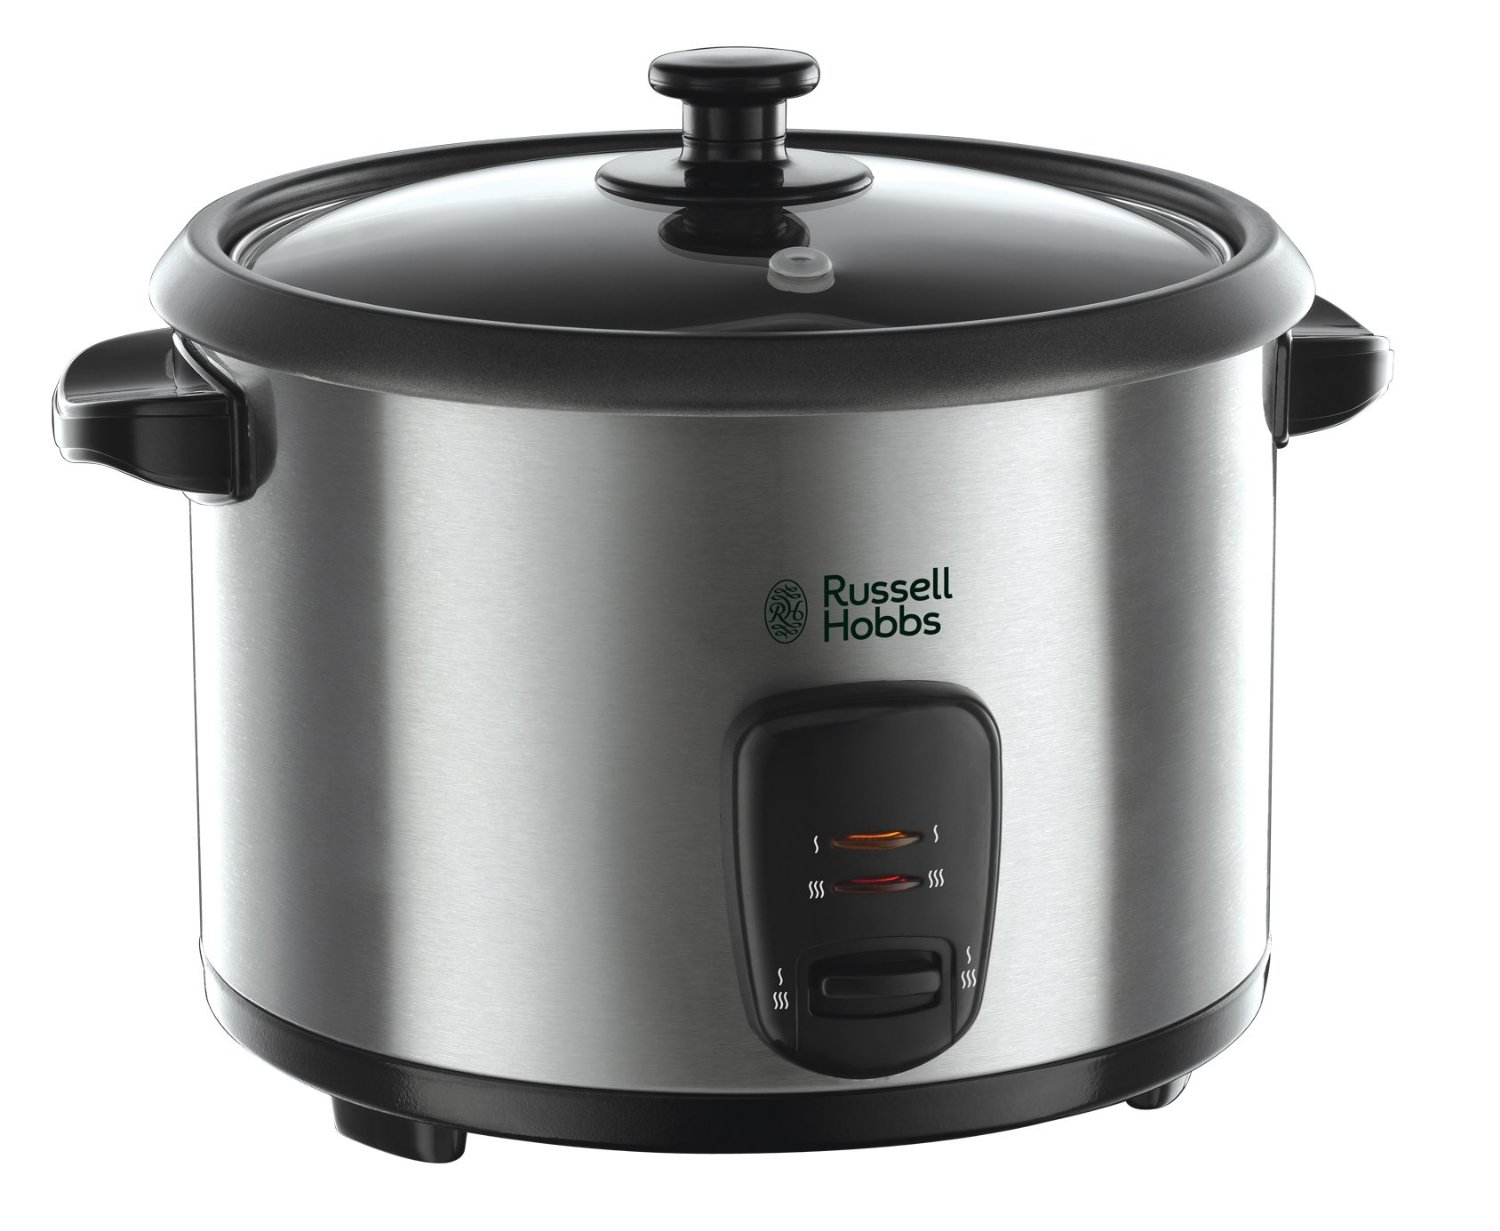 ... 19750 1.8L Rice Cooker & Food Steamer Steam Cooker Vegetables Fish